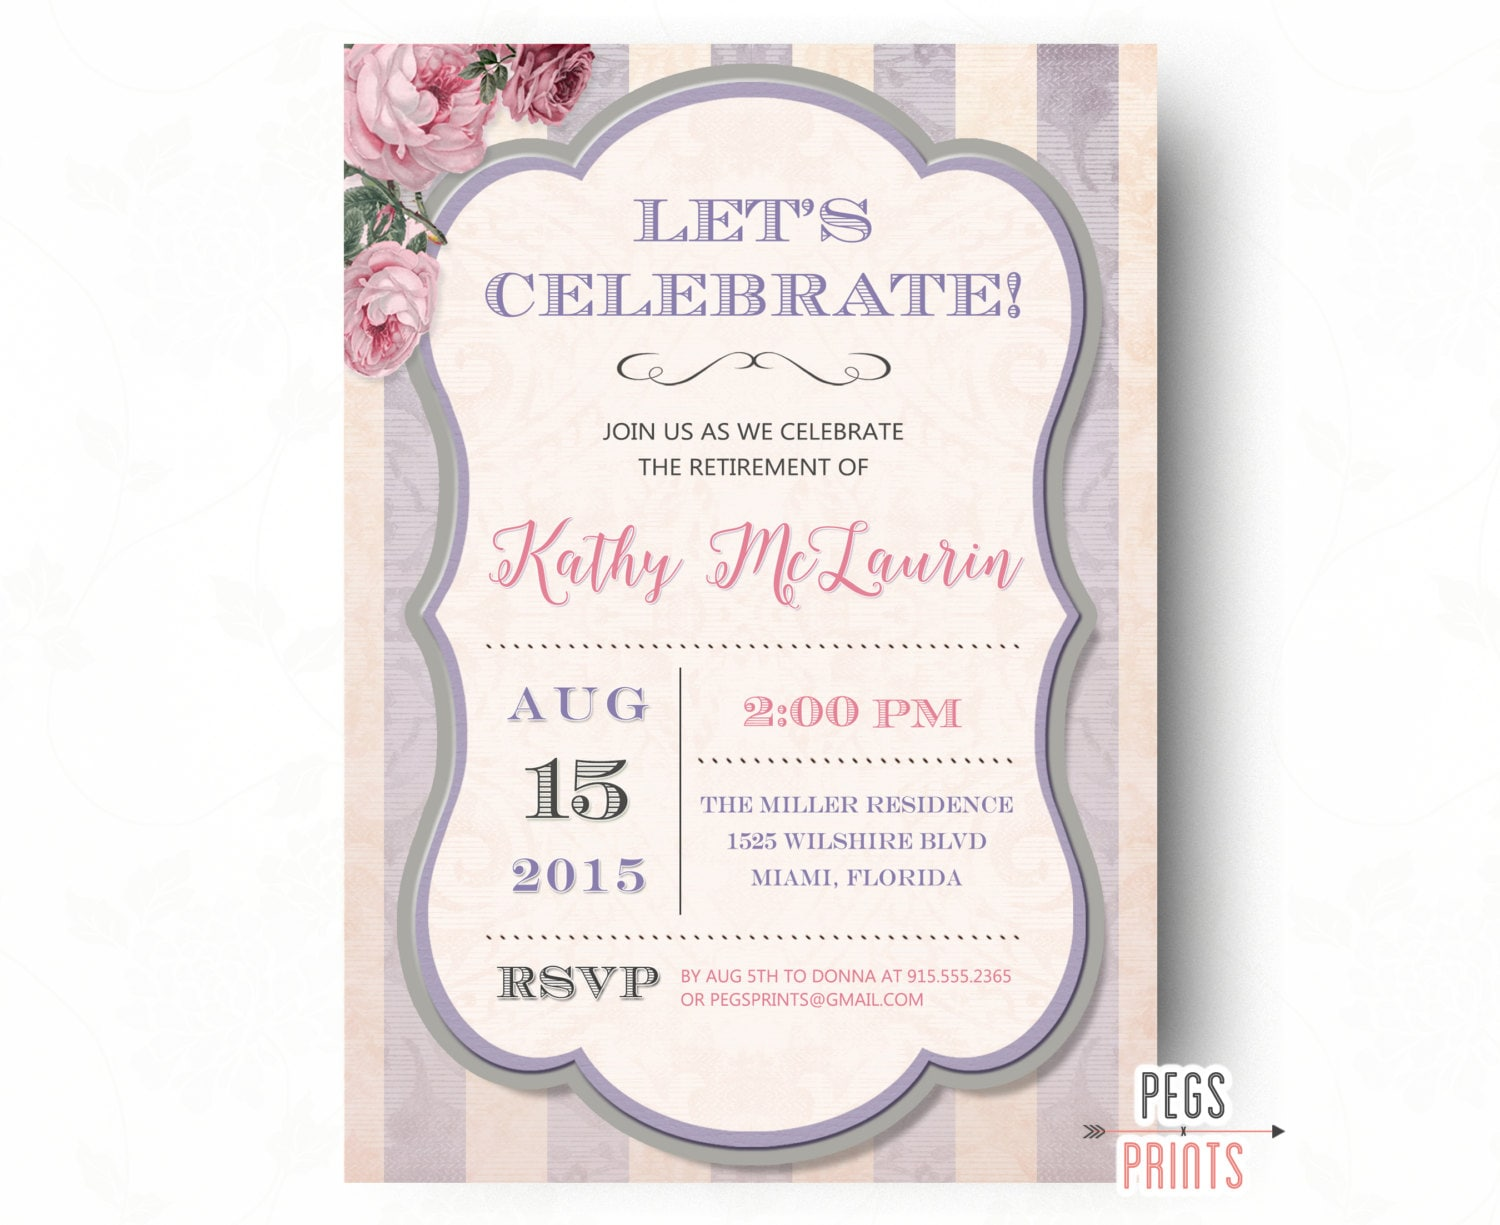 Retirement Party Invitation Shabby Chic Retirement Party